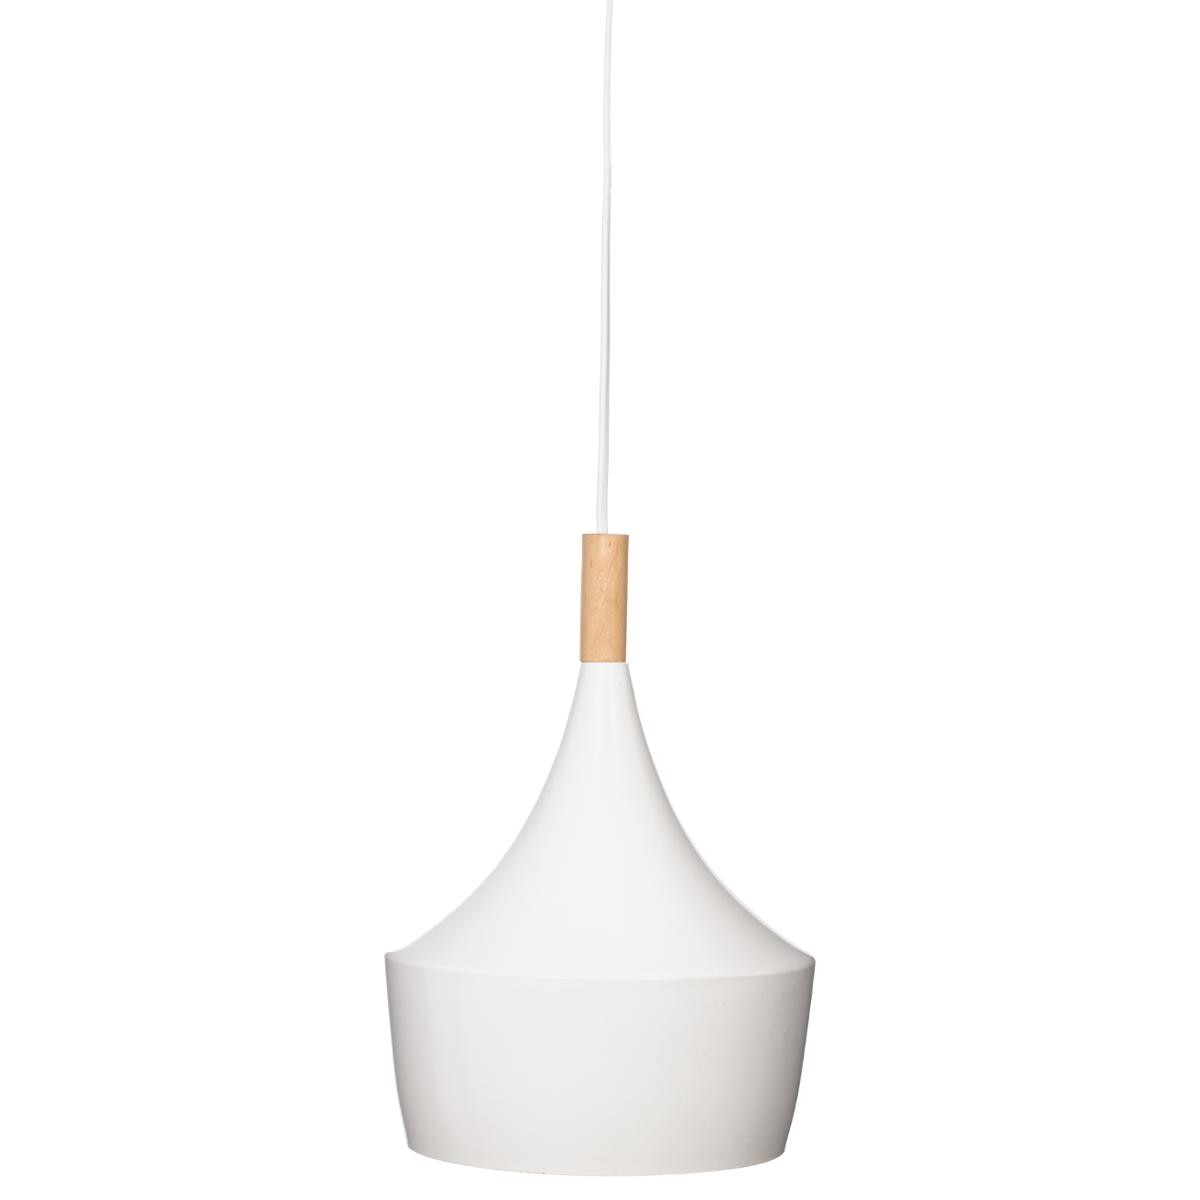 Suspension Blanche Suspension Blanche Bois Métal Ø20cm